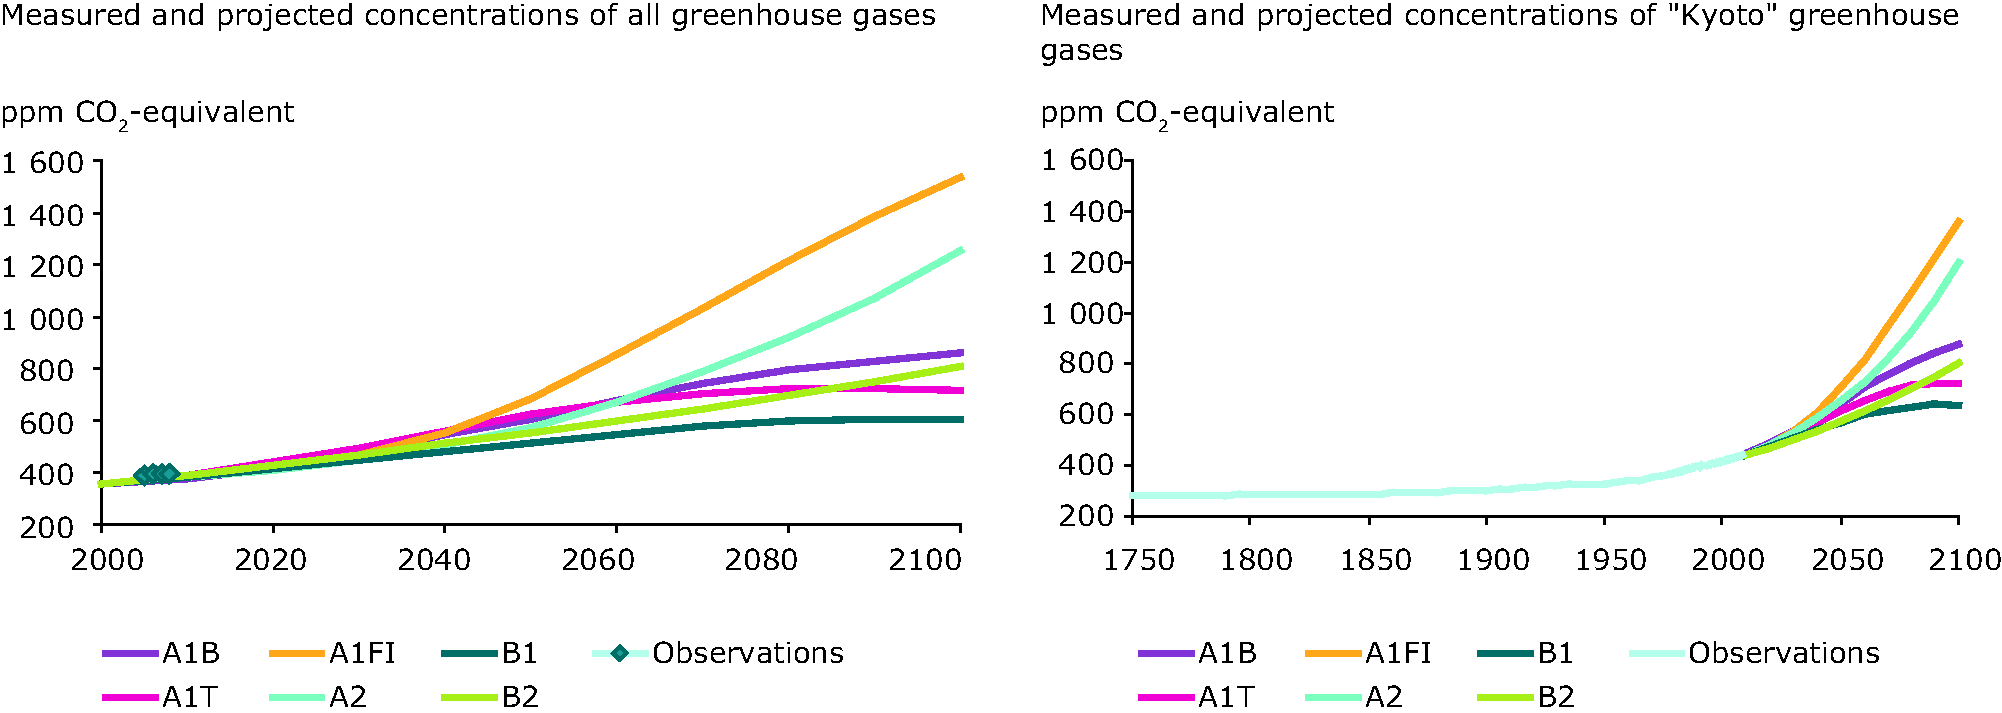 Measured and projected concentration of all greenhouse gases (left) and Kyoto greenhouse gases (right)